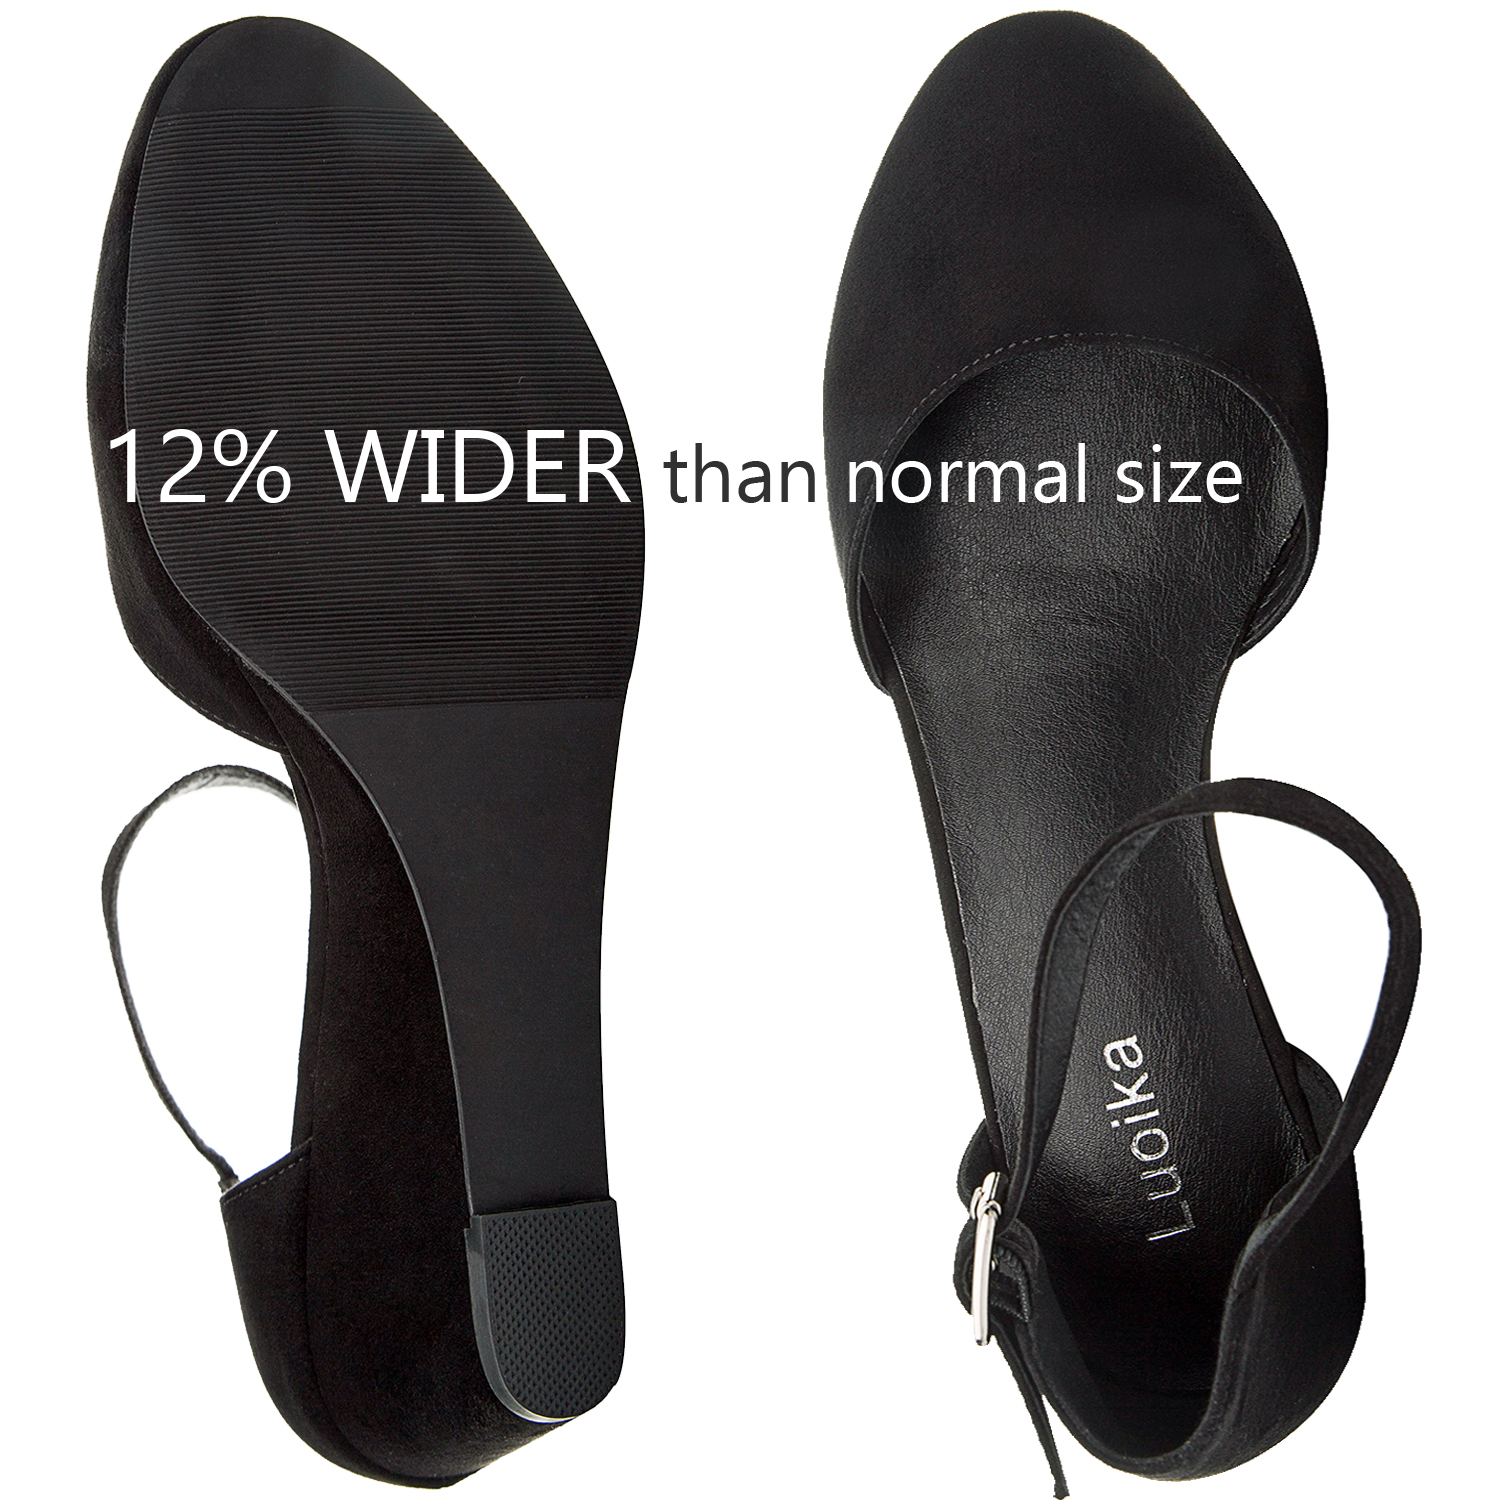 d71afb9f8c80 US  39.99 - Luoika Women s Wide Width Mini Wedges - Comfortable Mid Low  Heel Ankle Buckle Strap